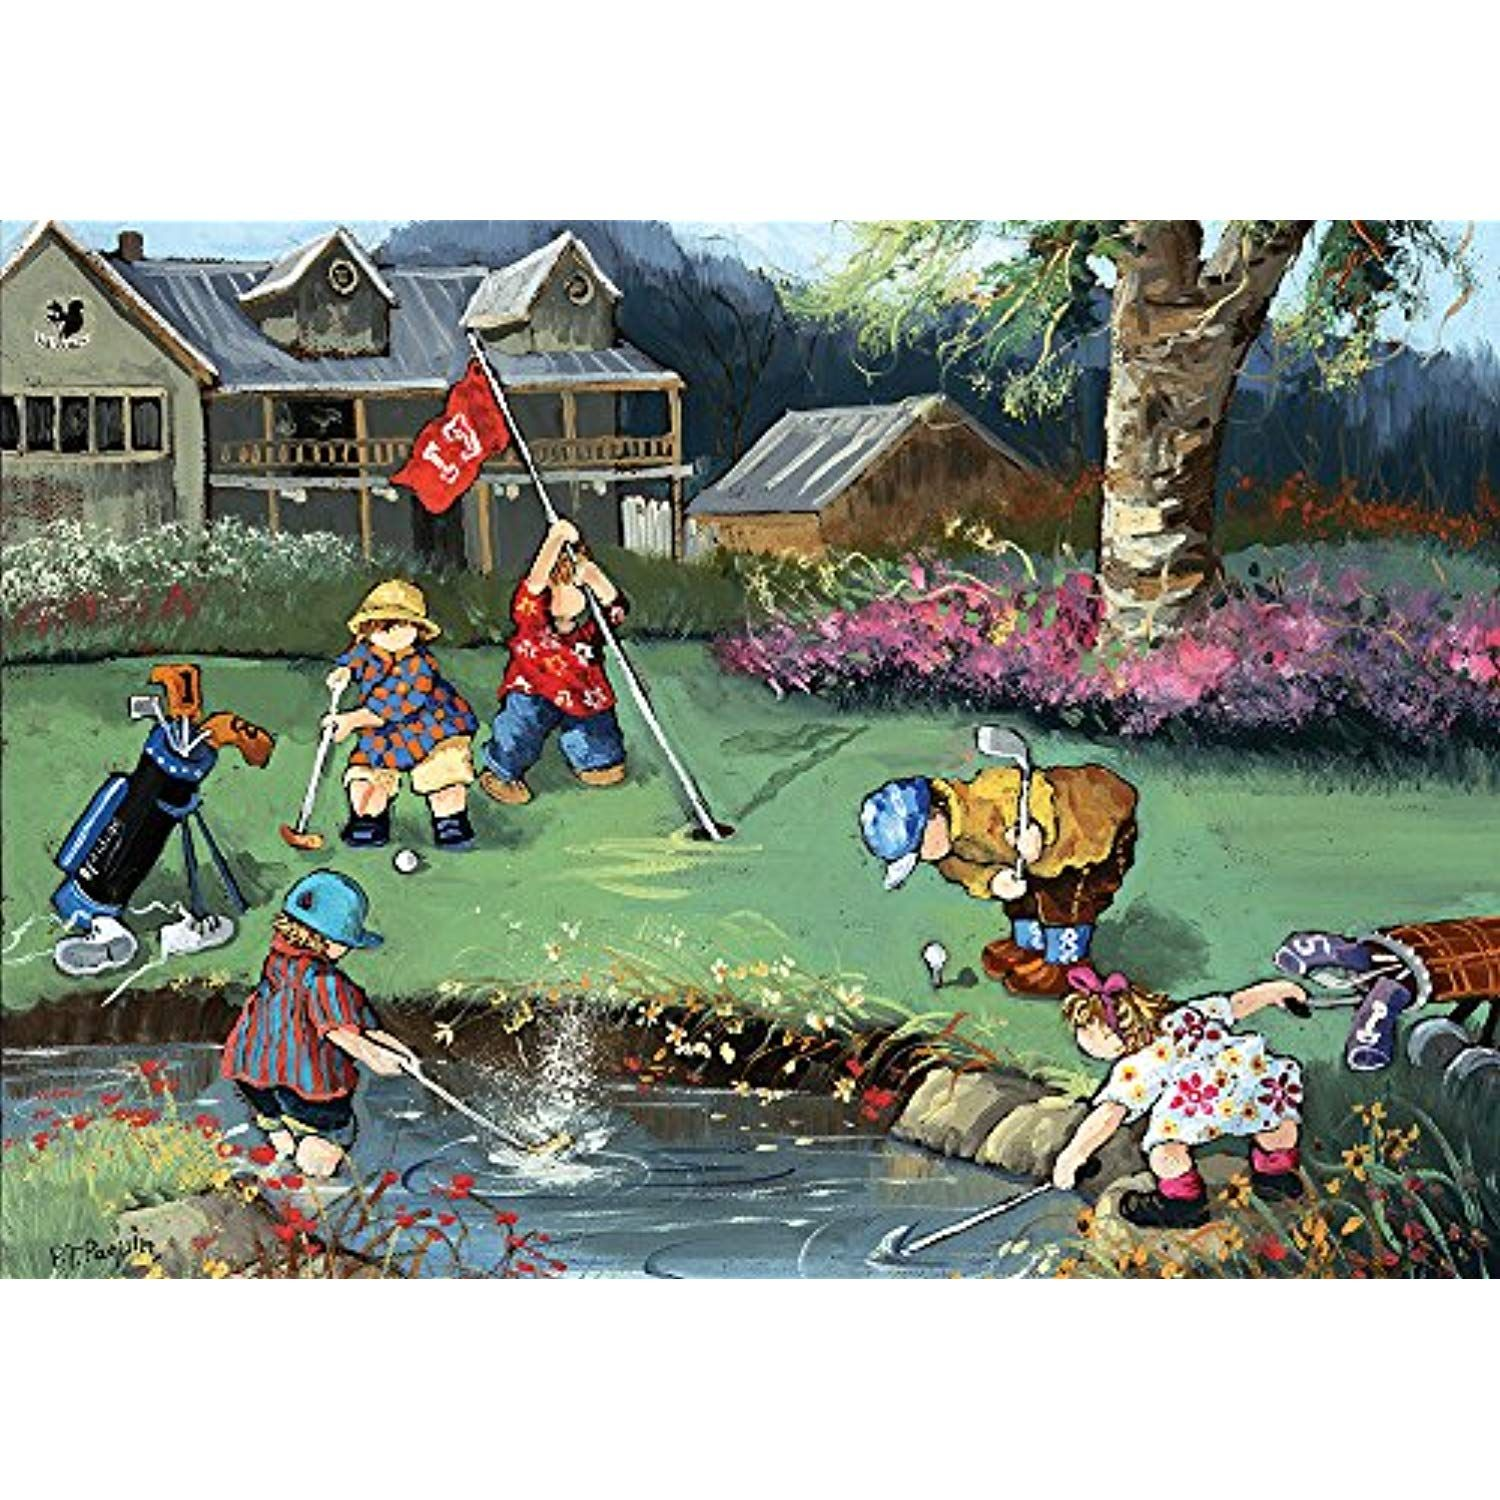 Trefl Puzzle Golf Game a Jigsaw (1000 Piece) More info